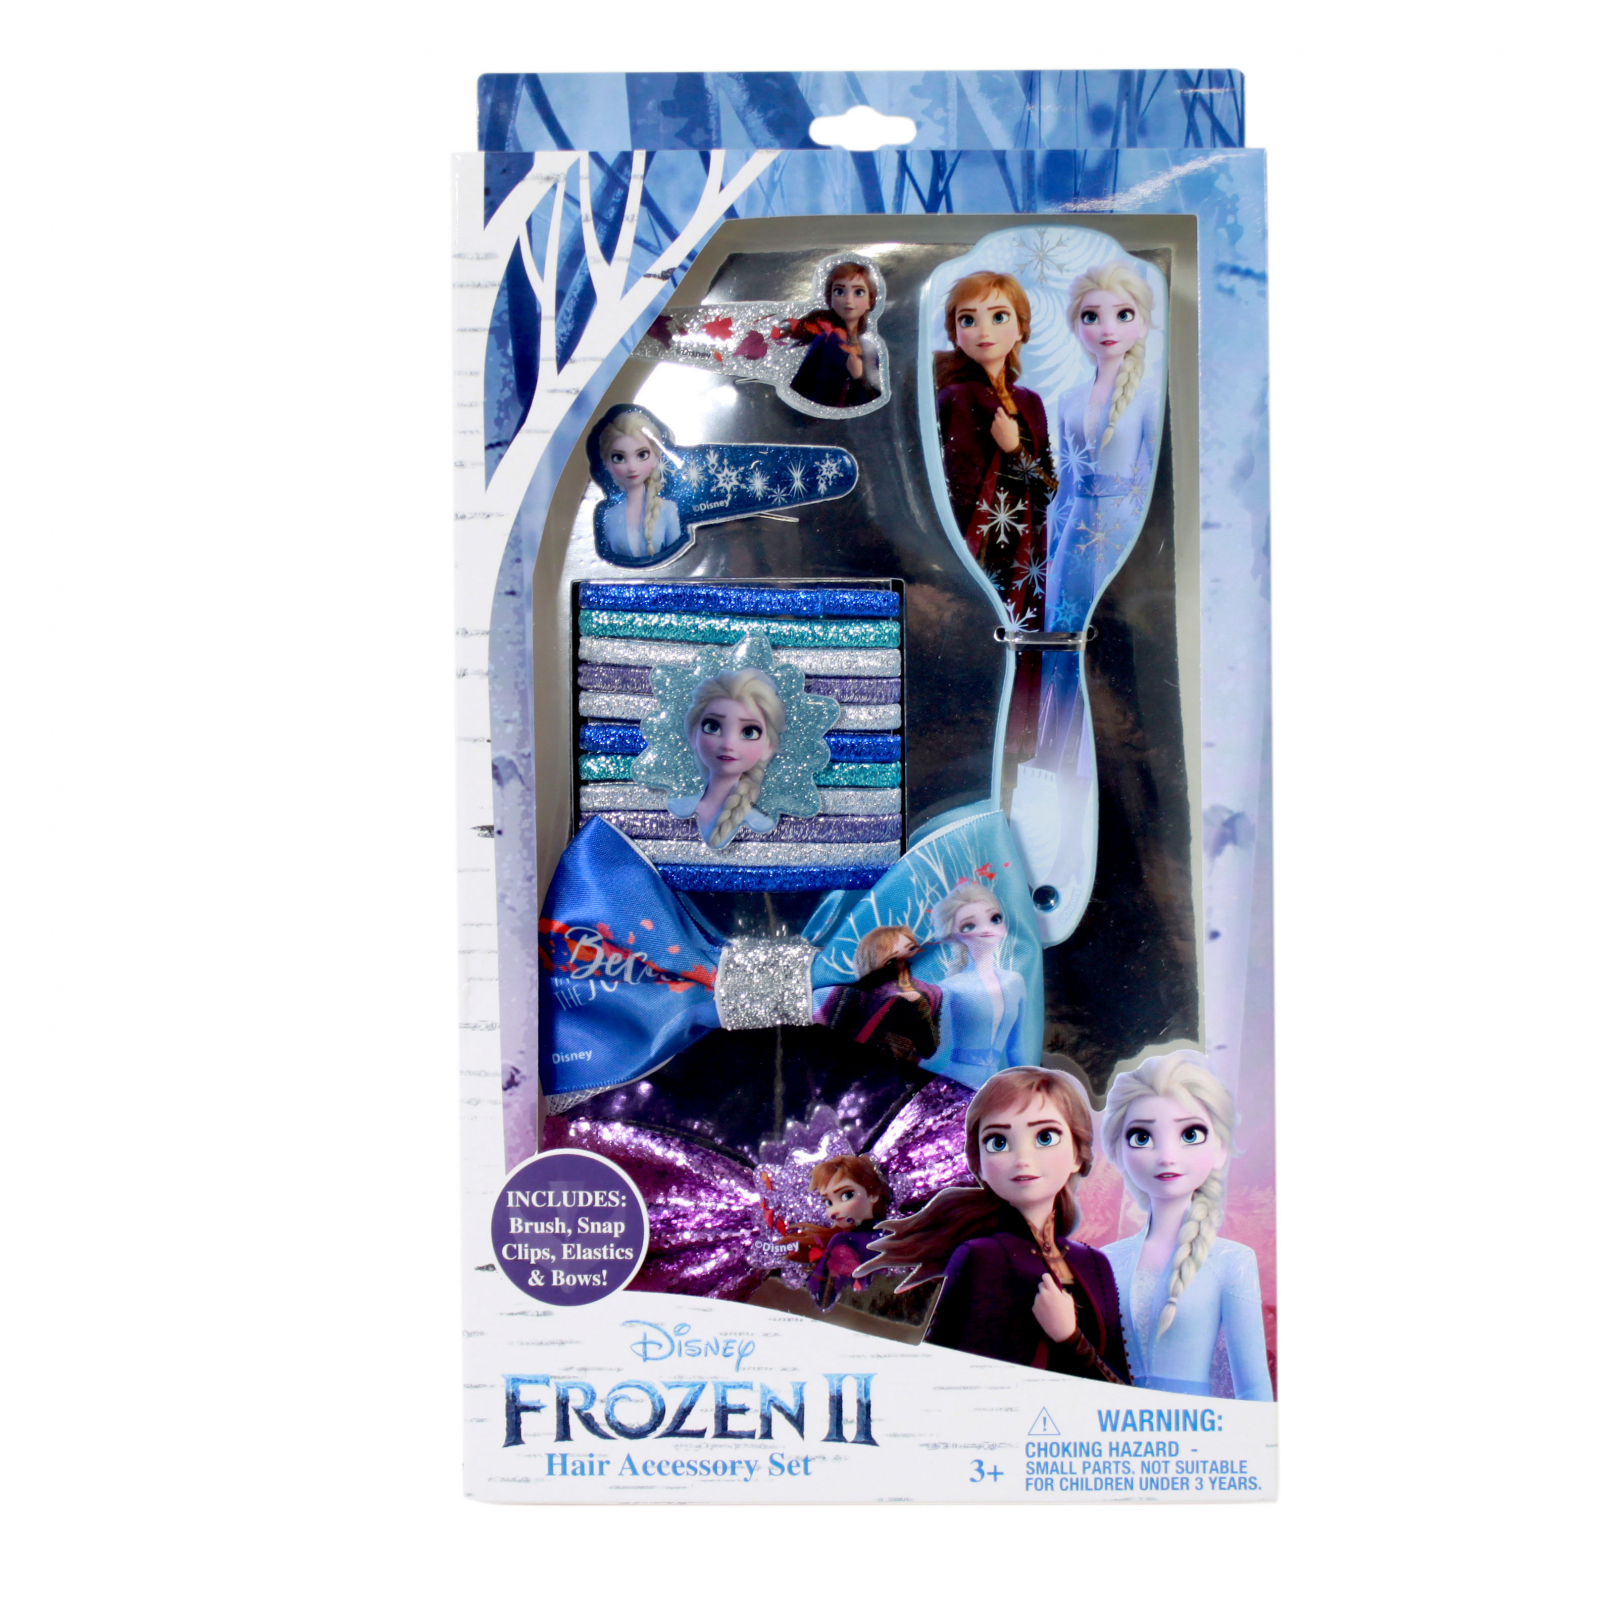 Disney Frozen 2 Girls Hair Accessory Gift Set 16 Pieces